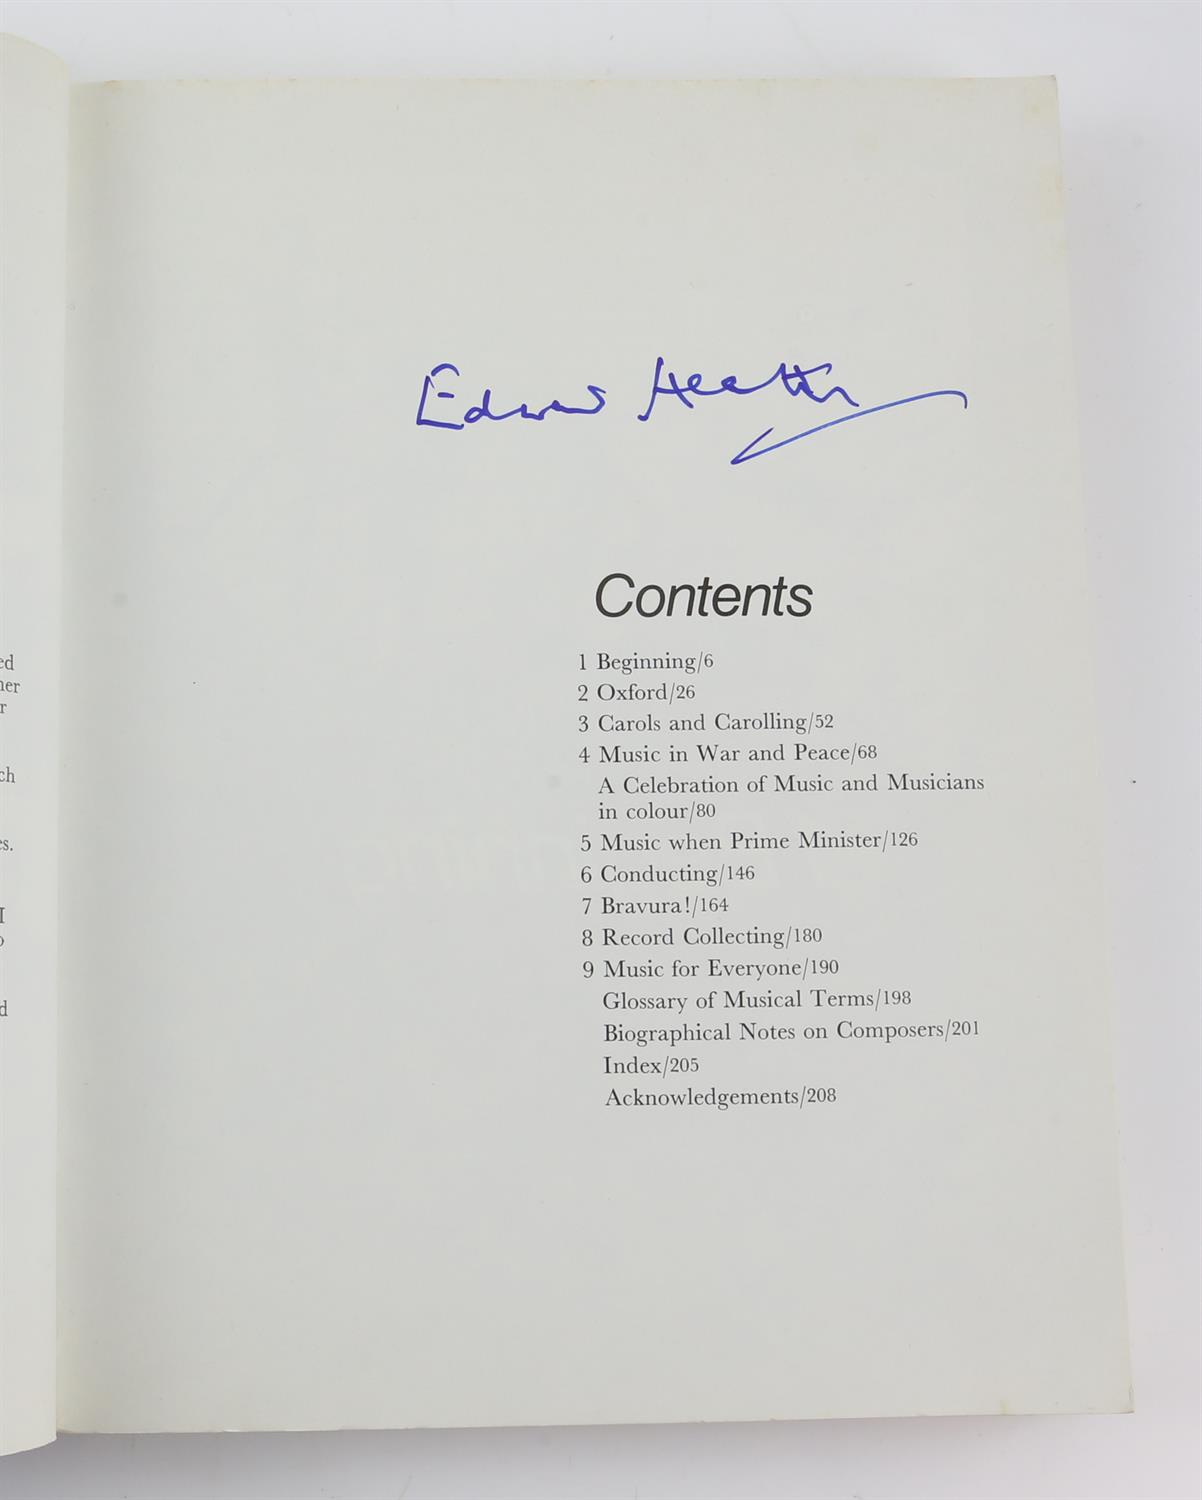 9 autographed books signed by Lauren Bacall, Richard Todd, Michael Palin, Leslie Caron, - Image 10 of 10